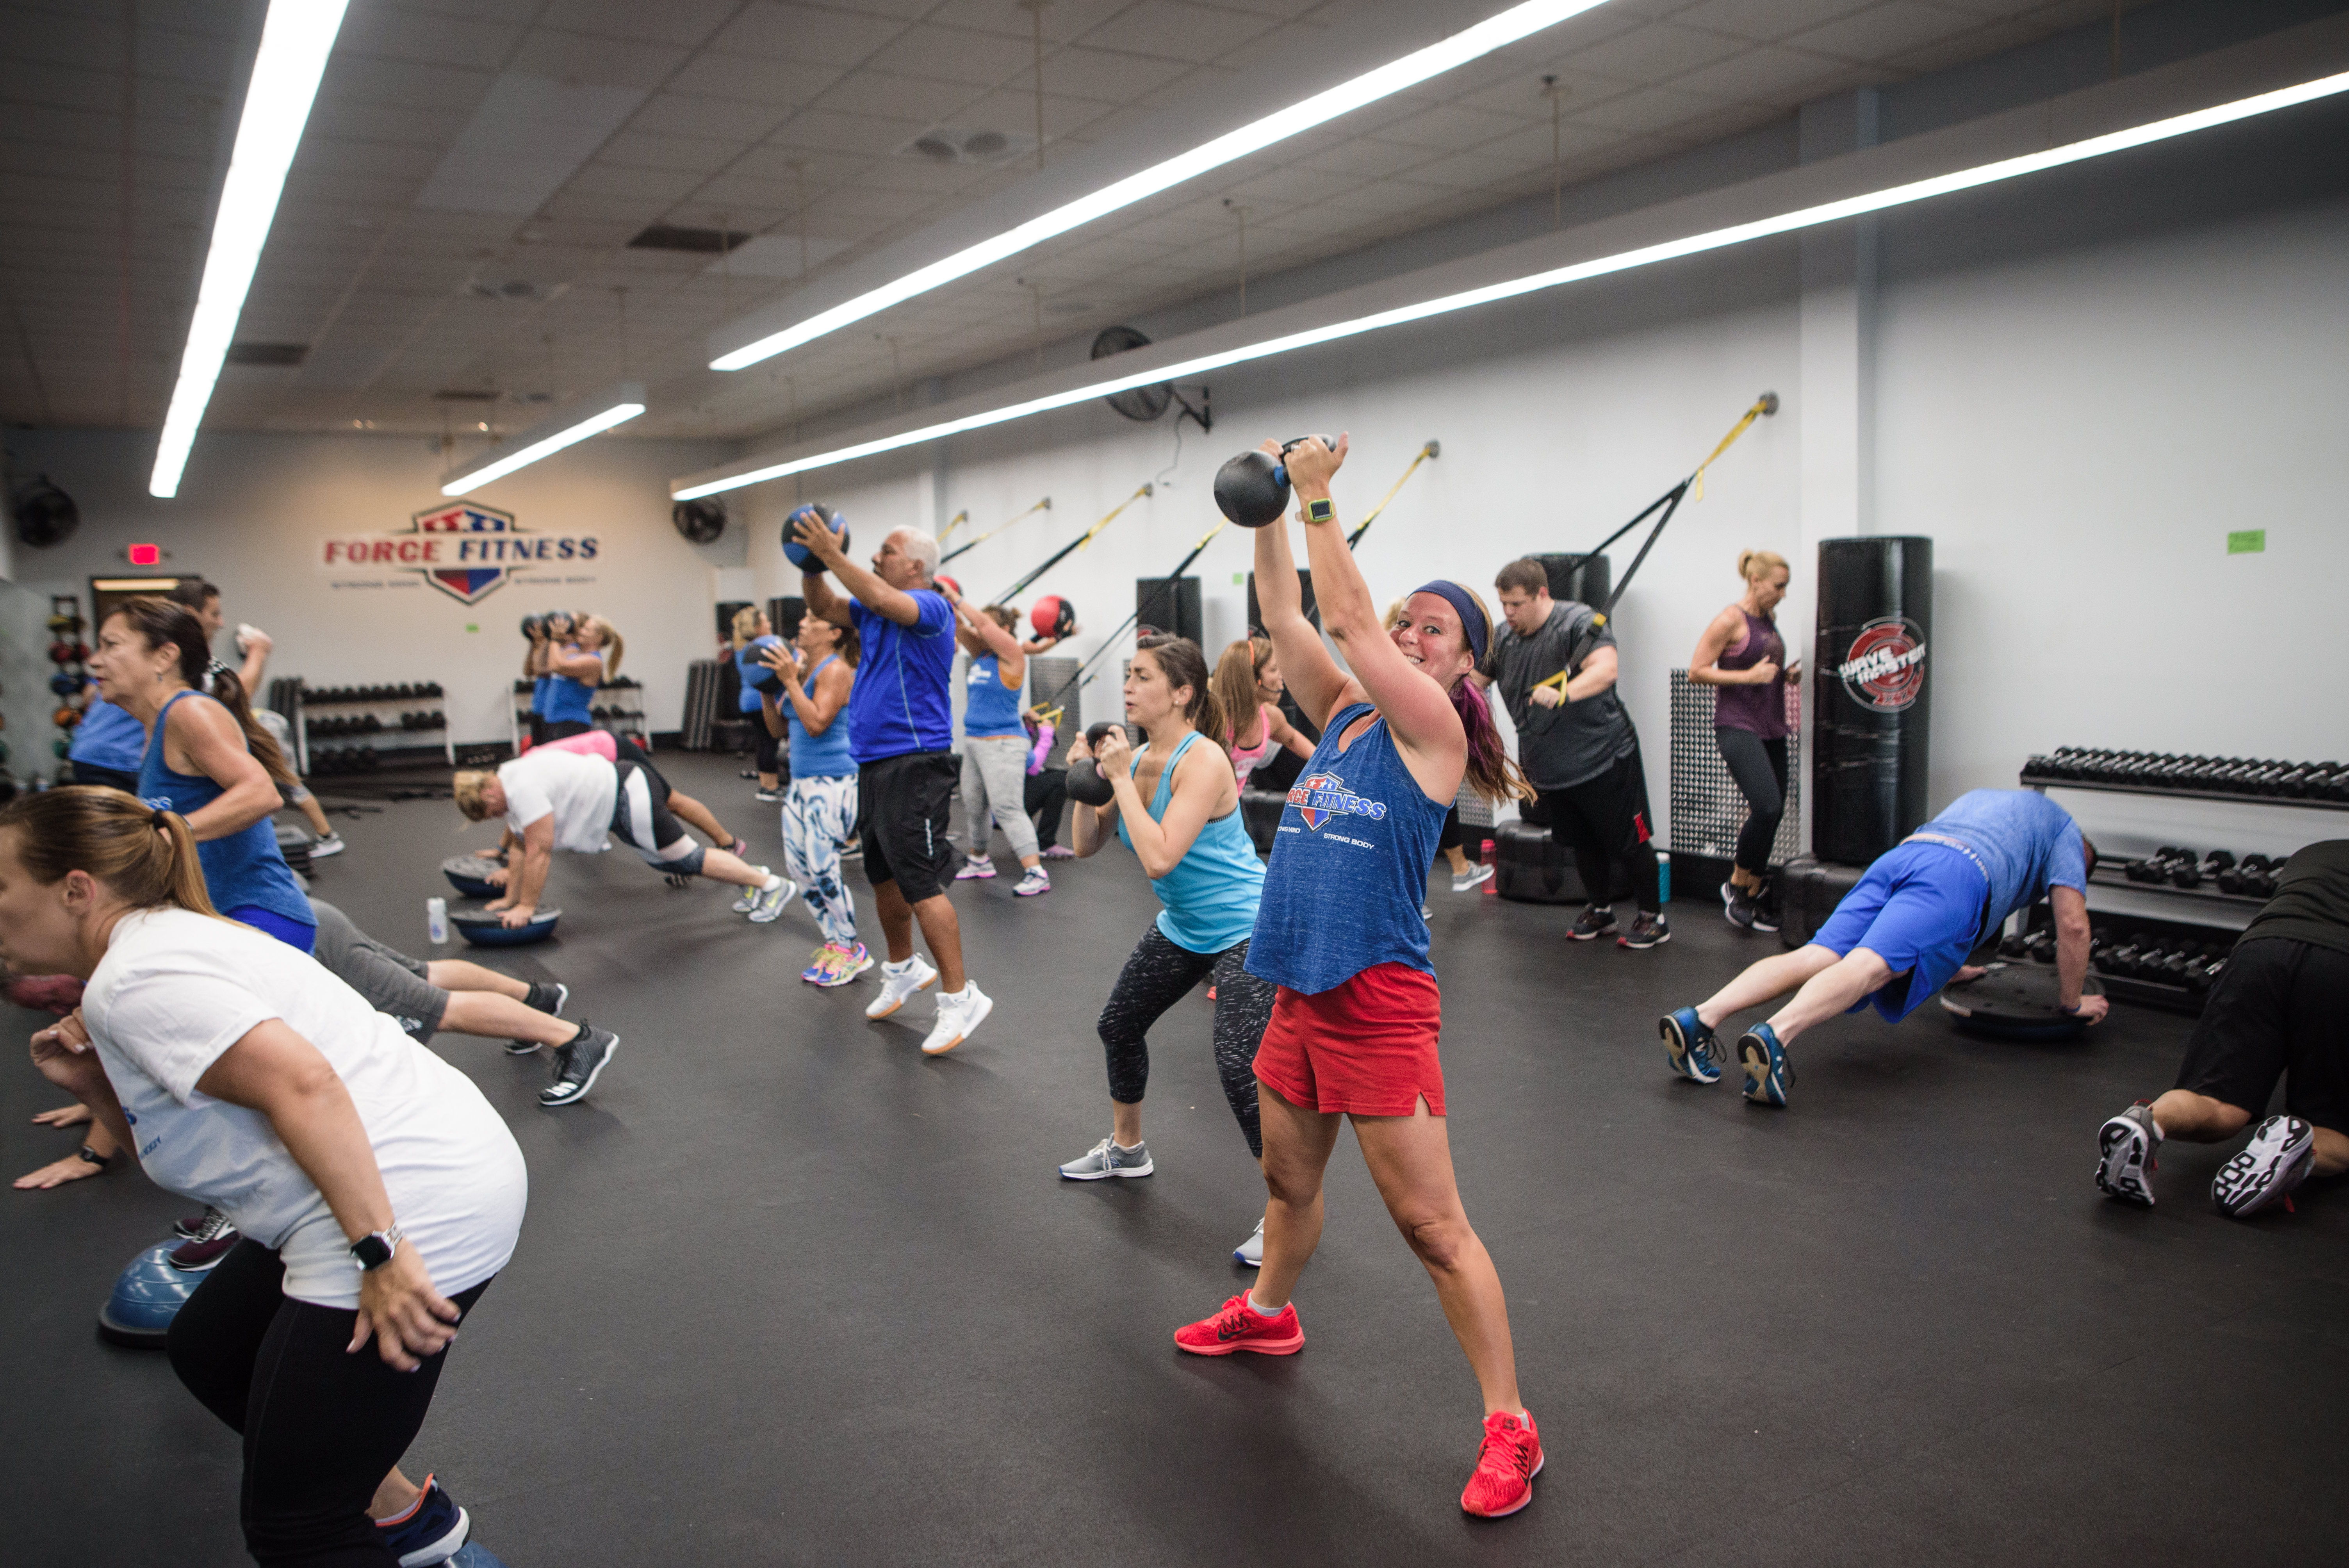 Are You Looking For A Fitness Studio In Toms River, NJ?